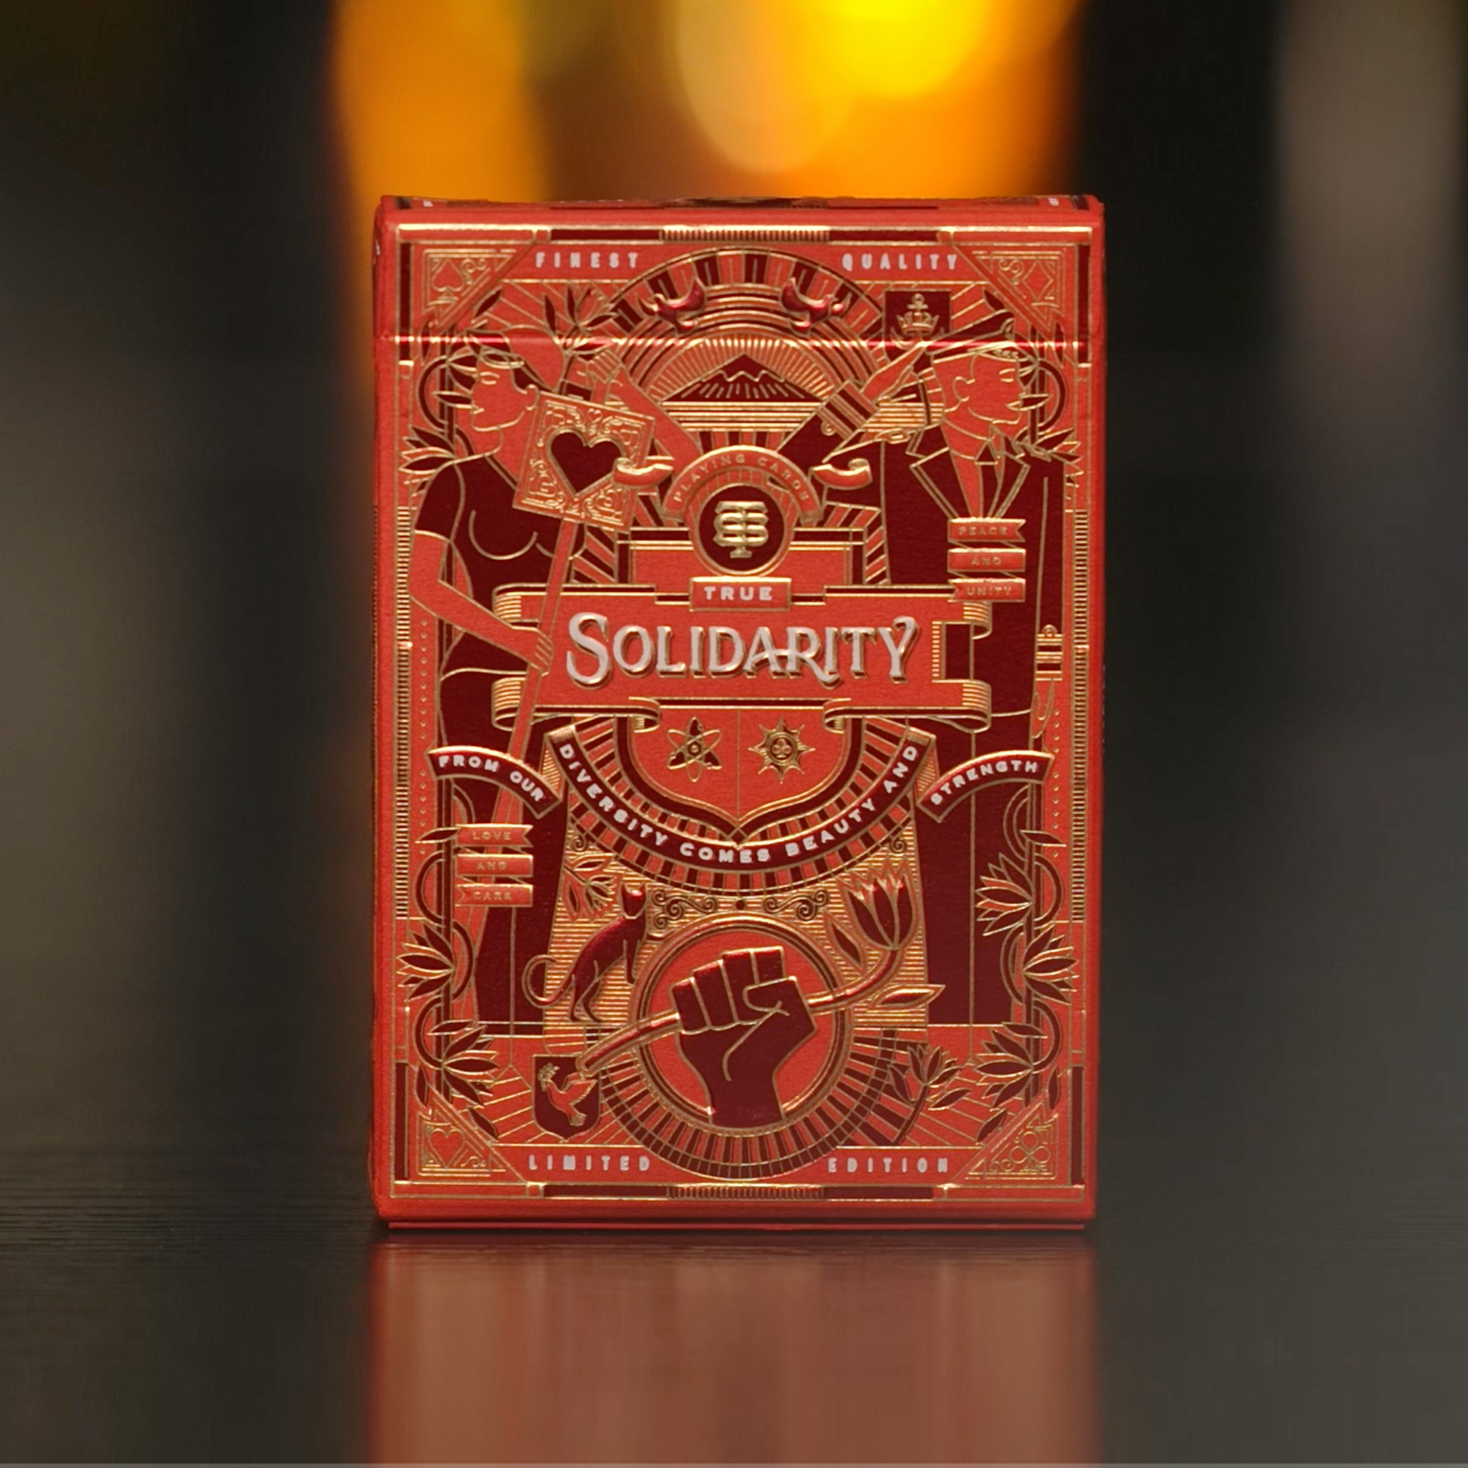 Solidarity Playing Cards Designed by Intertype Studio